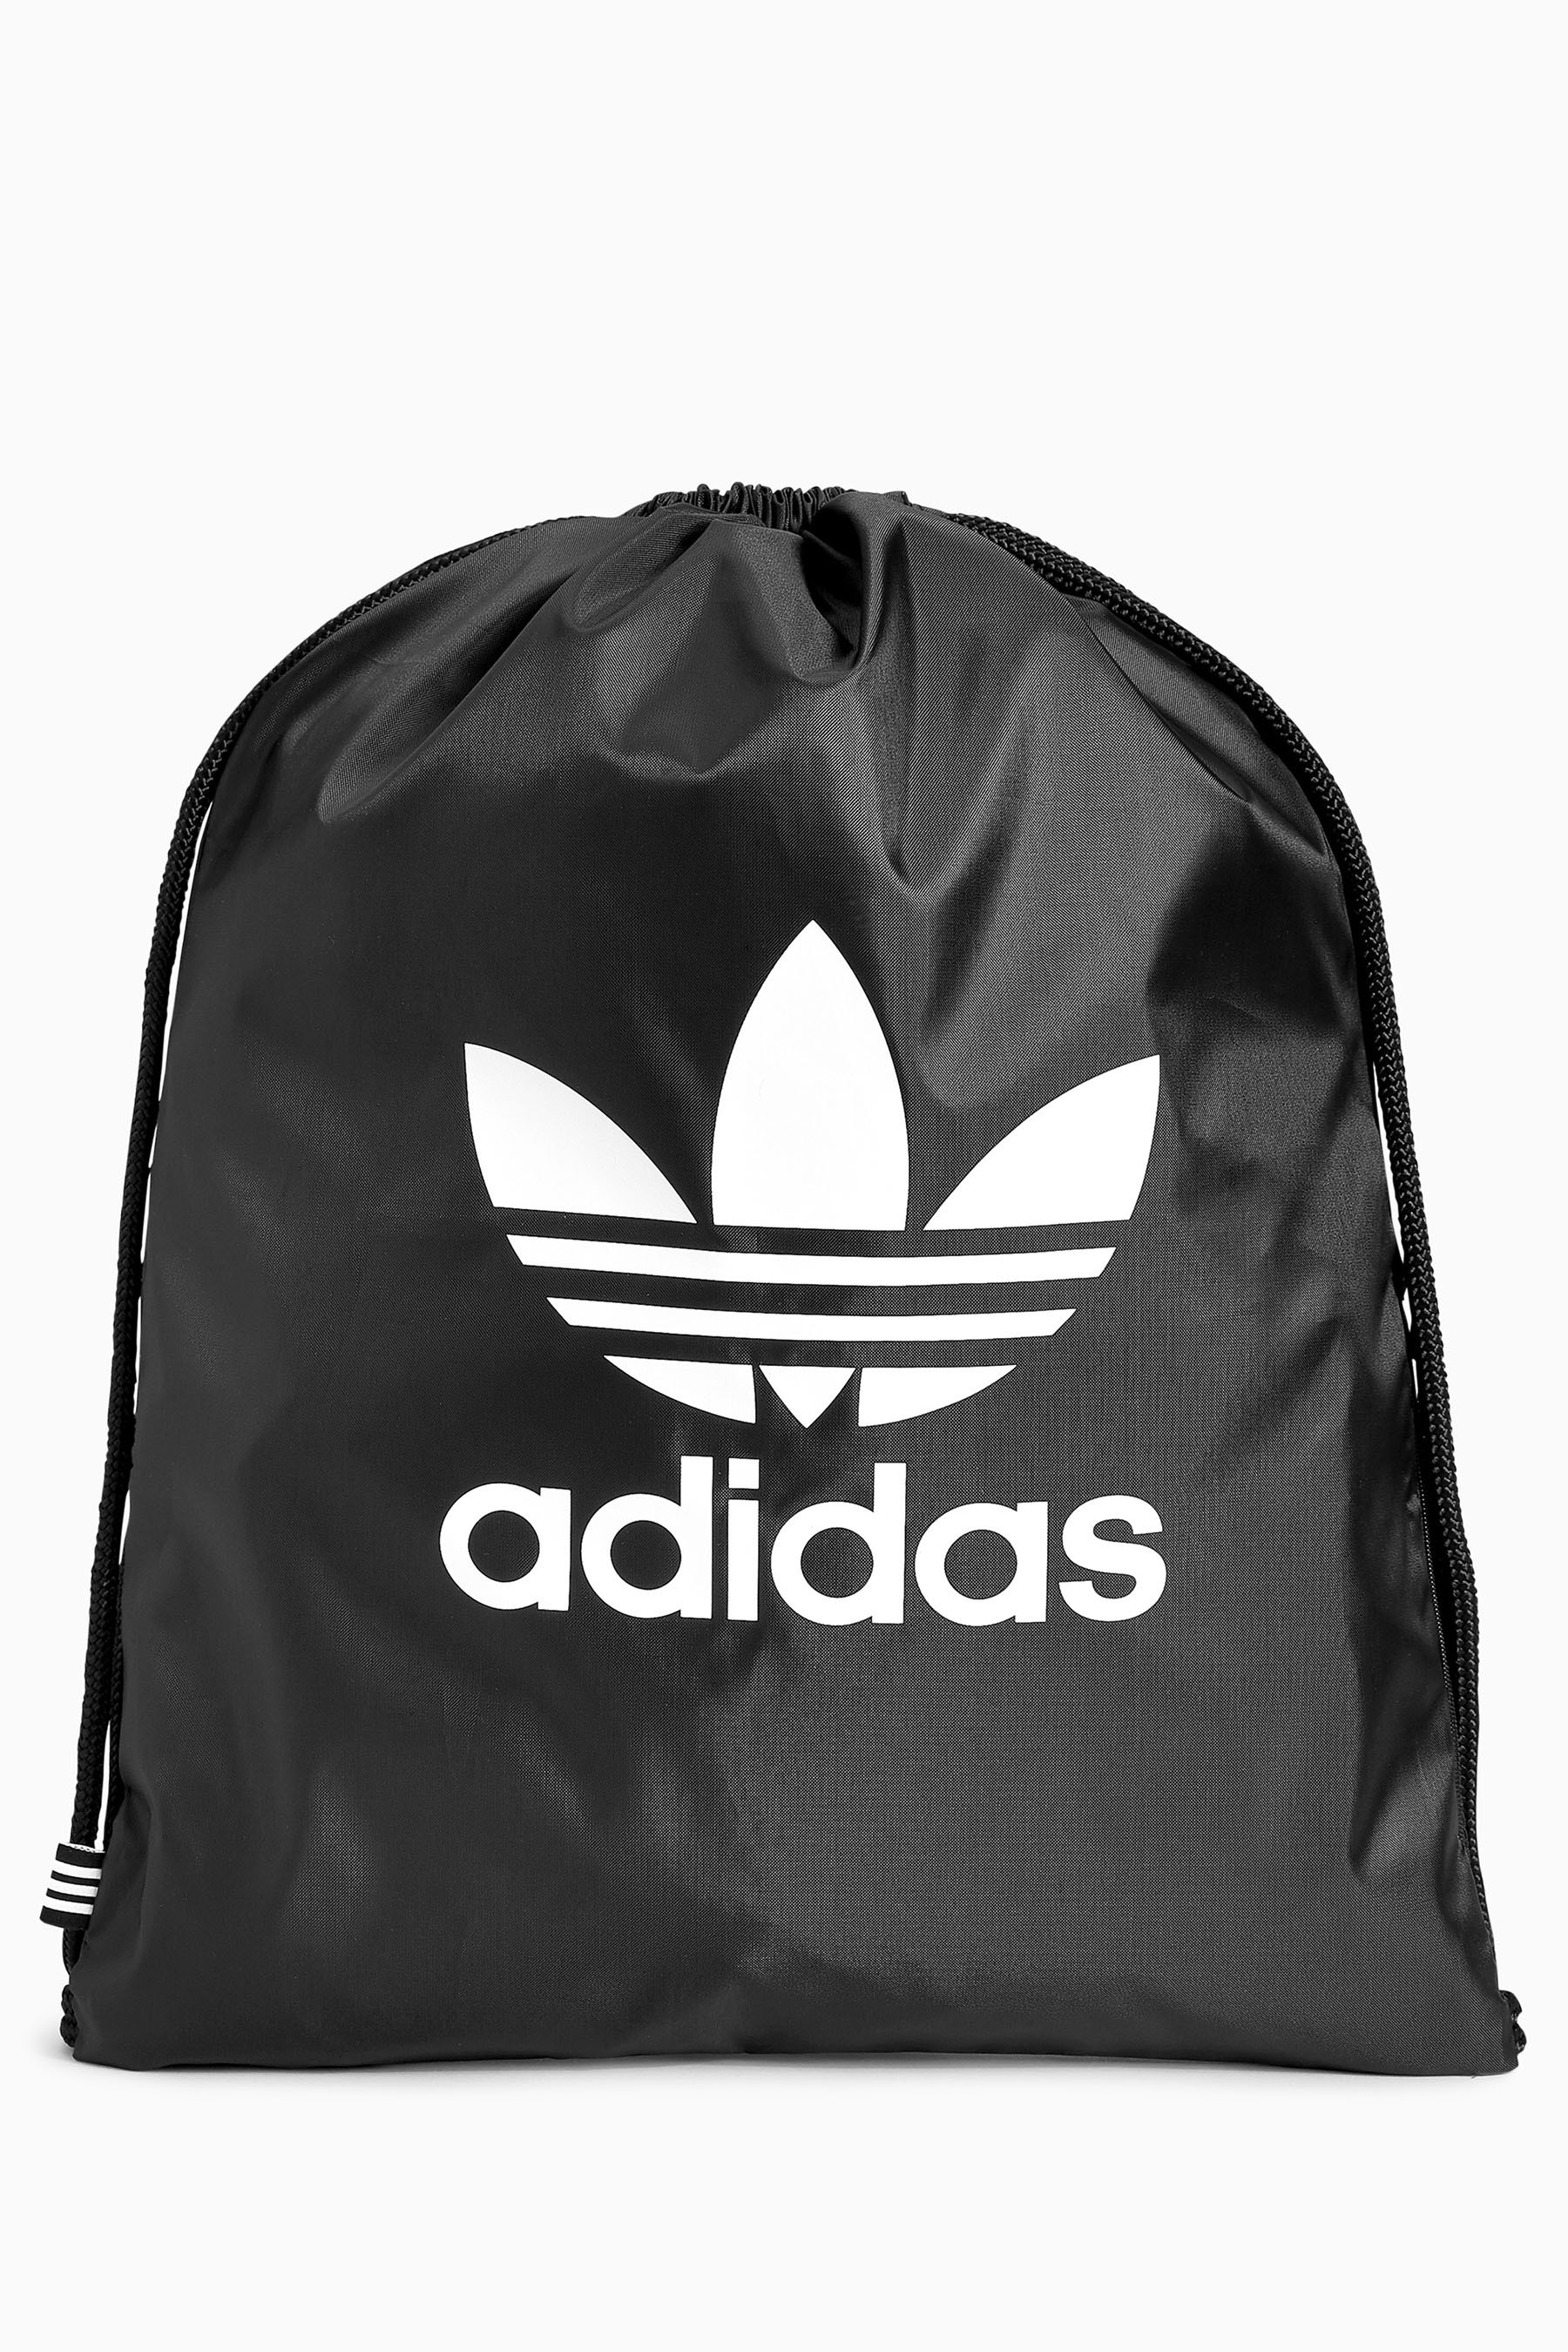 Compare retail prices of Boys Adidas Originals Black Trefoil Gymsack - Black to get the best deal online